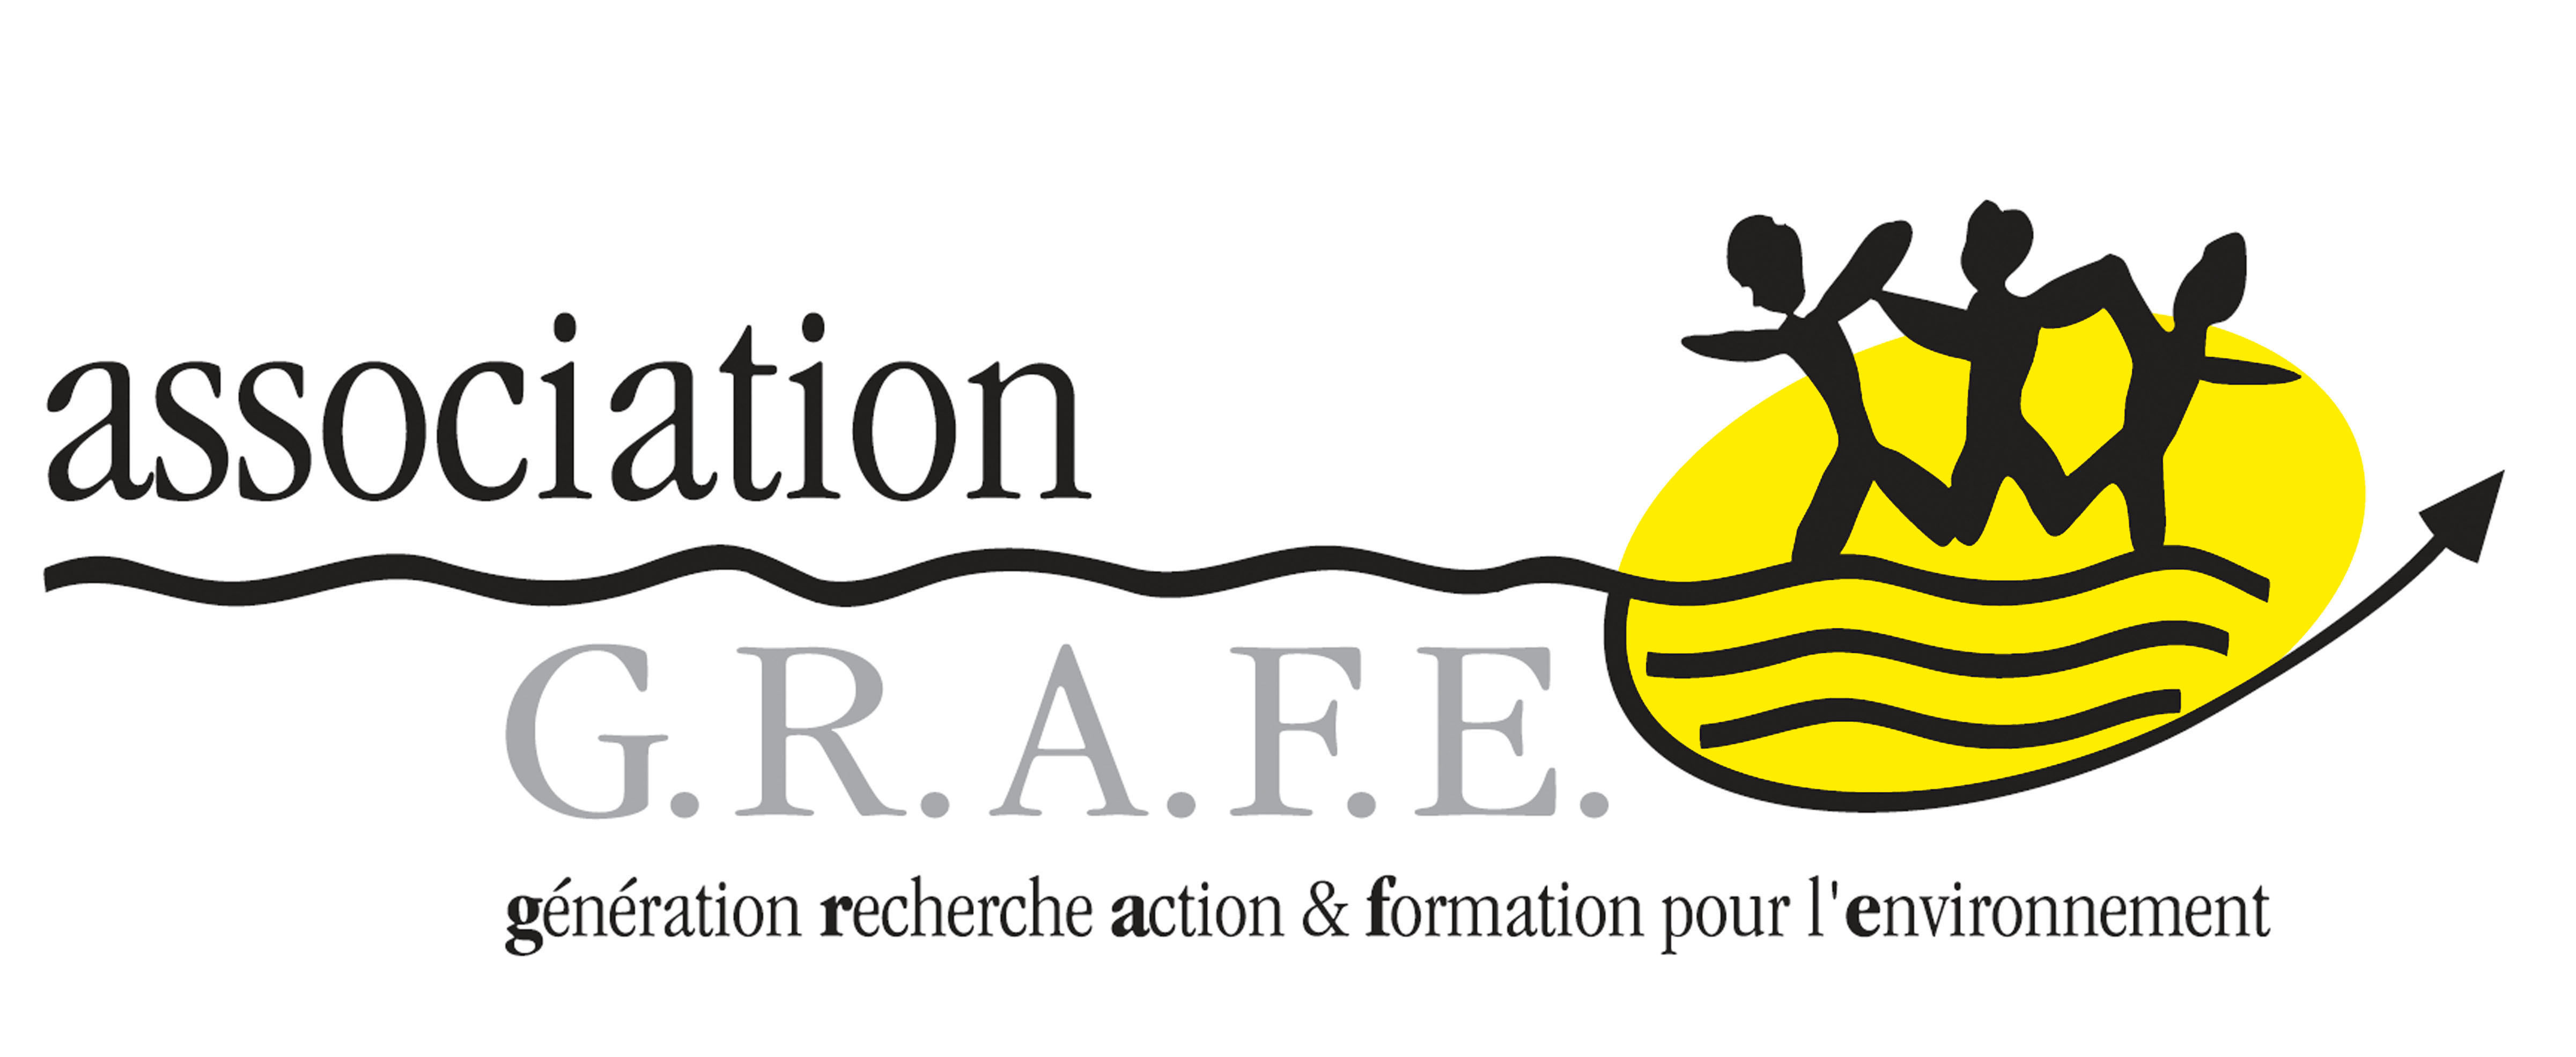 Association GRAFE